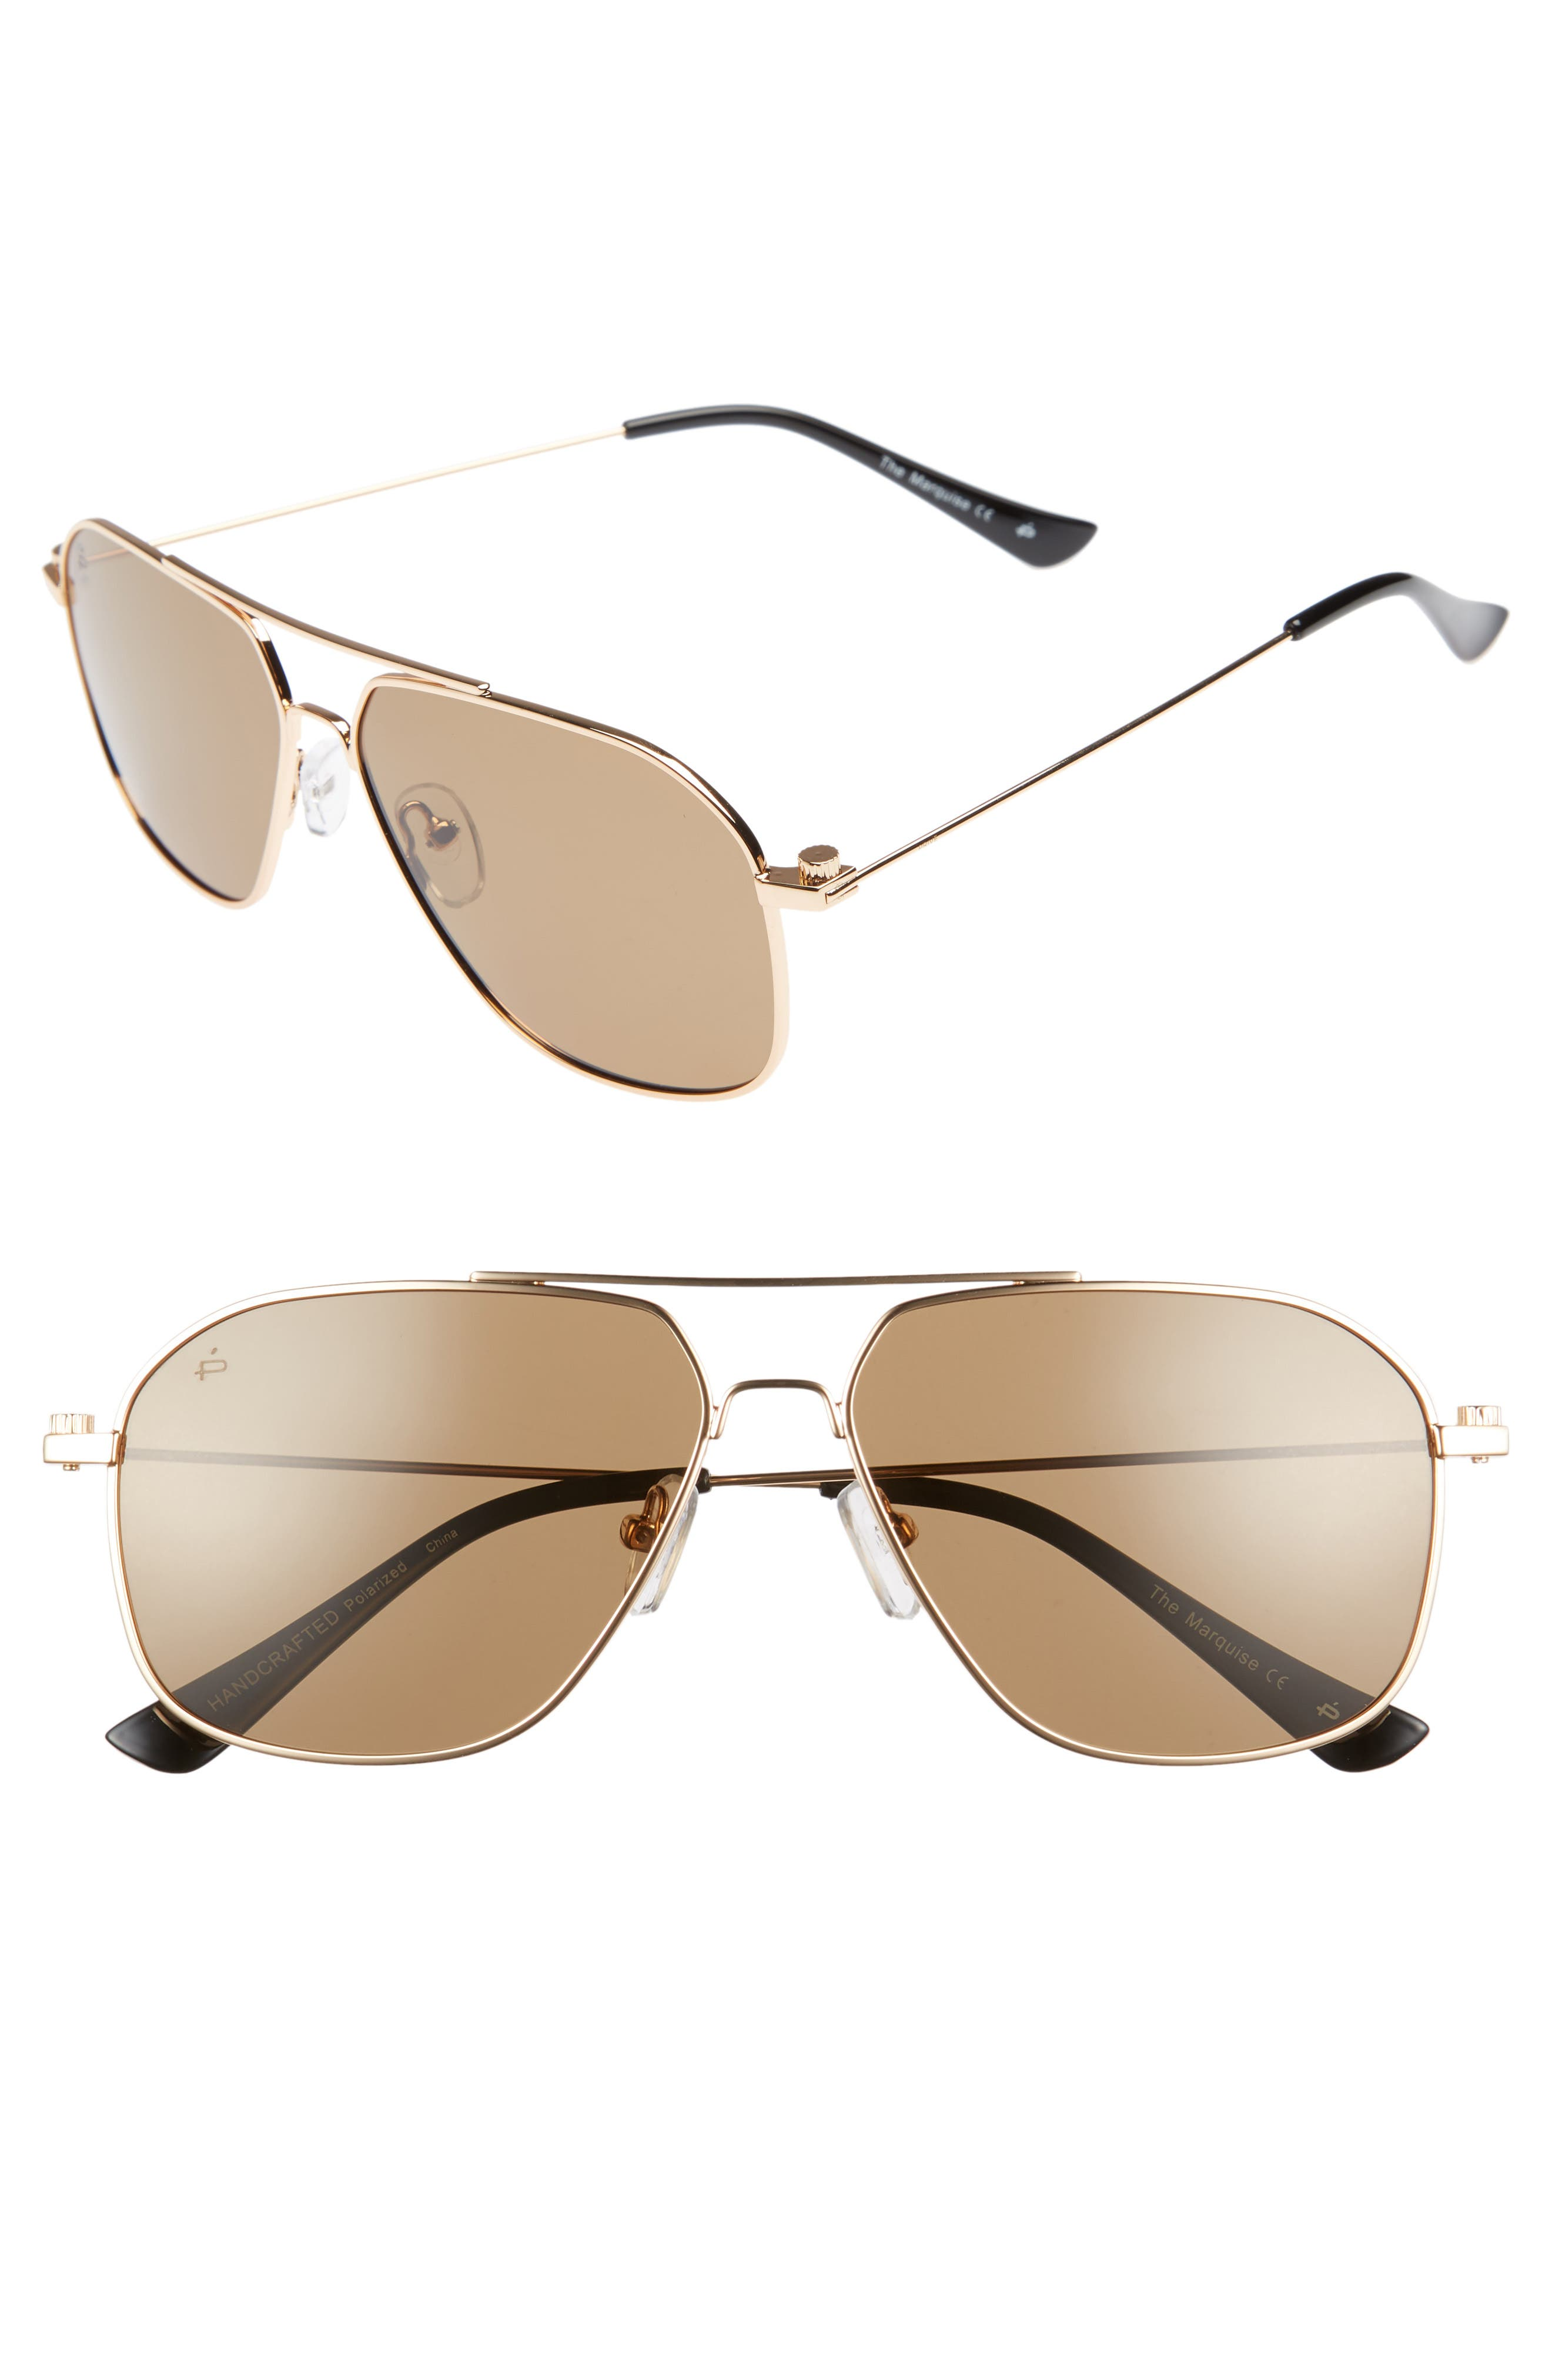 Privé Revaux The Marquise 58mm Aviator Sunglasses,                         Main,                         color, 710